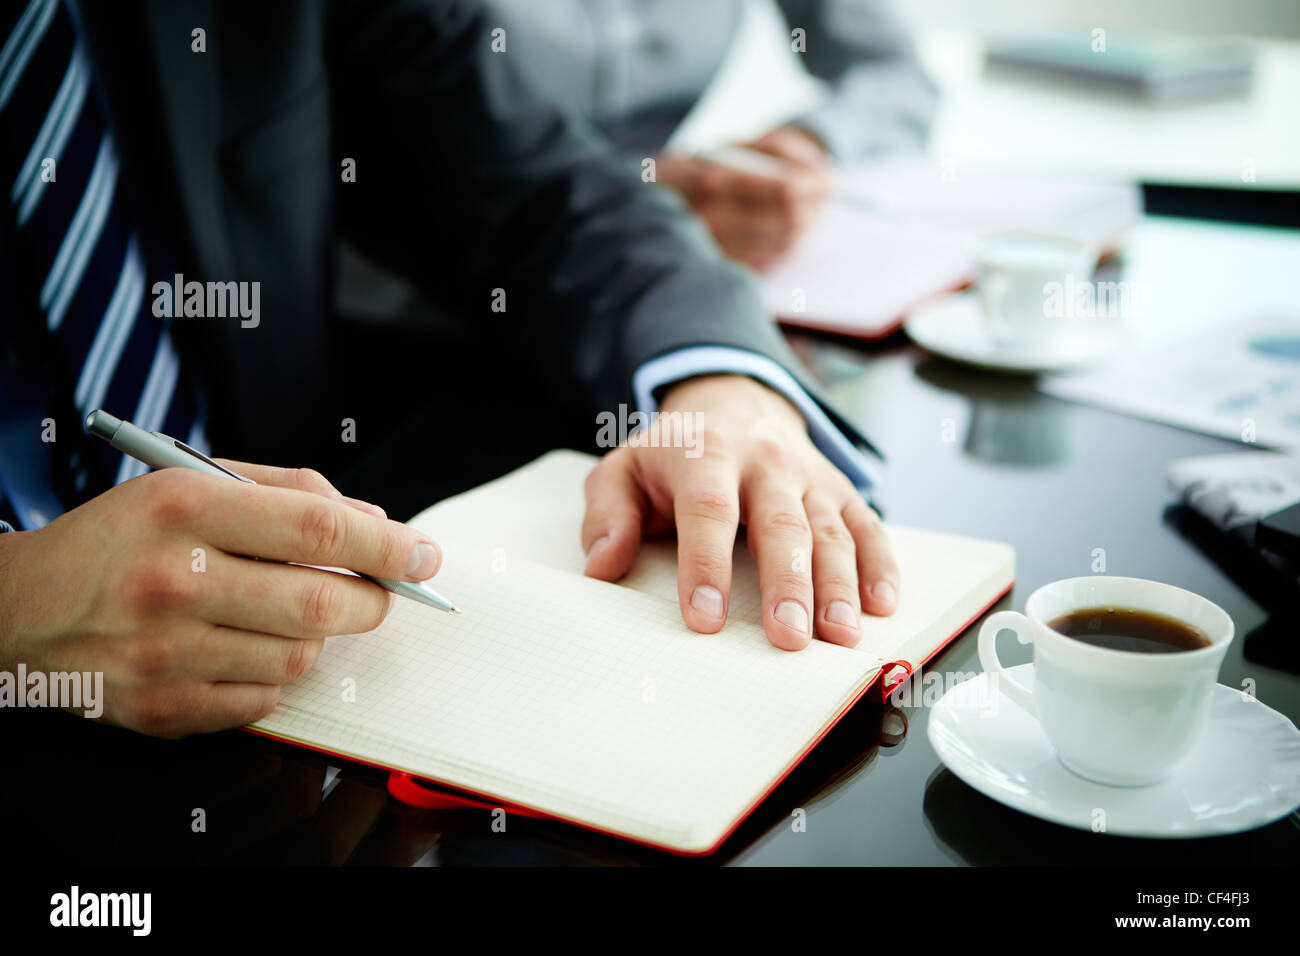 Image of male hand with pen over open notebook during planning work - Stock Image